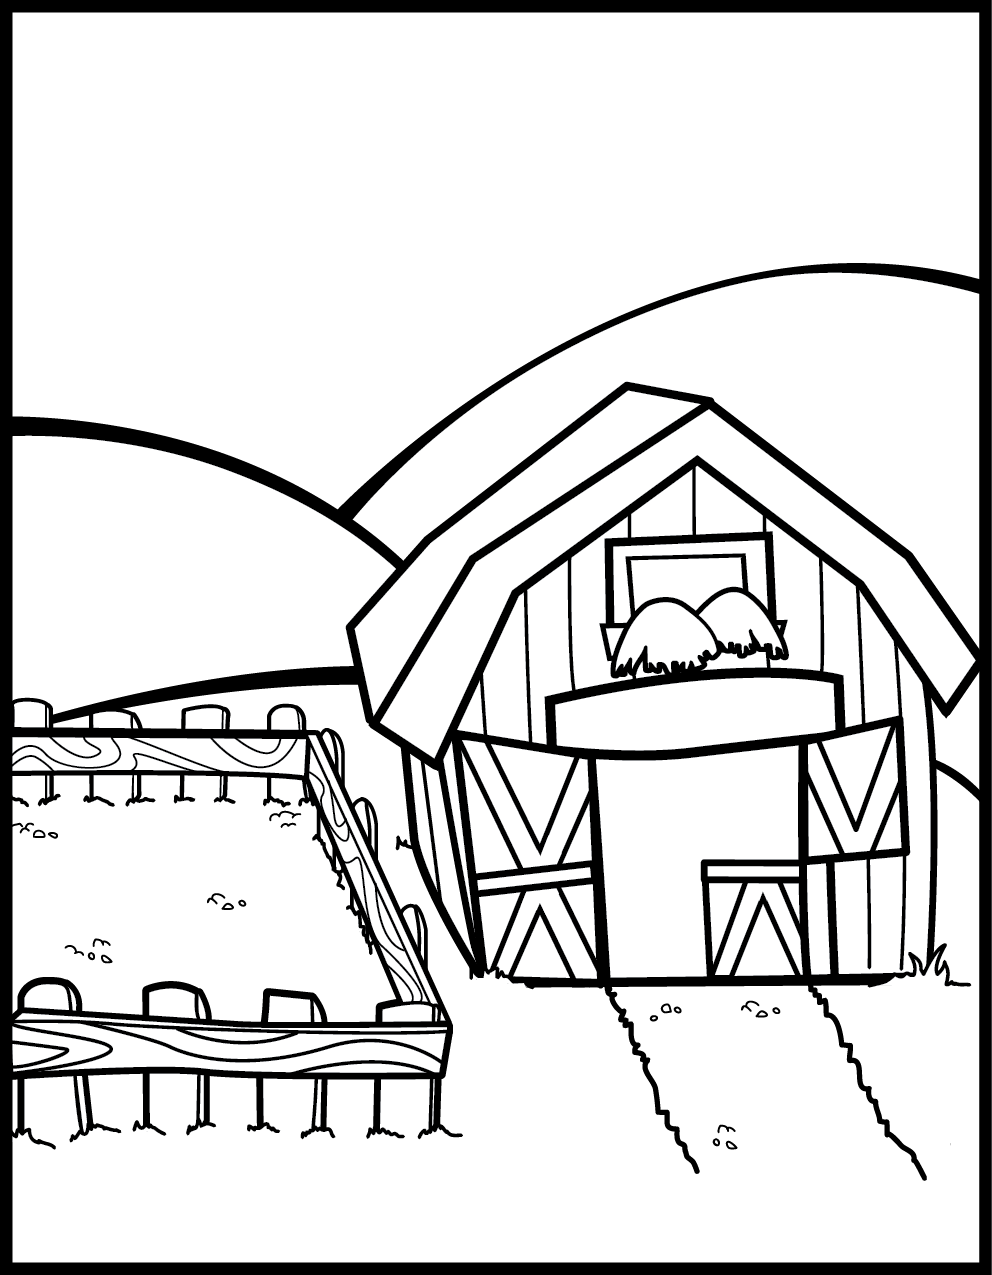 Farm Coloring Pages Preschool - Coloring Home